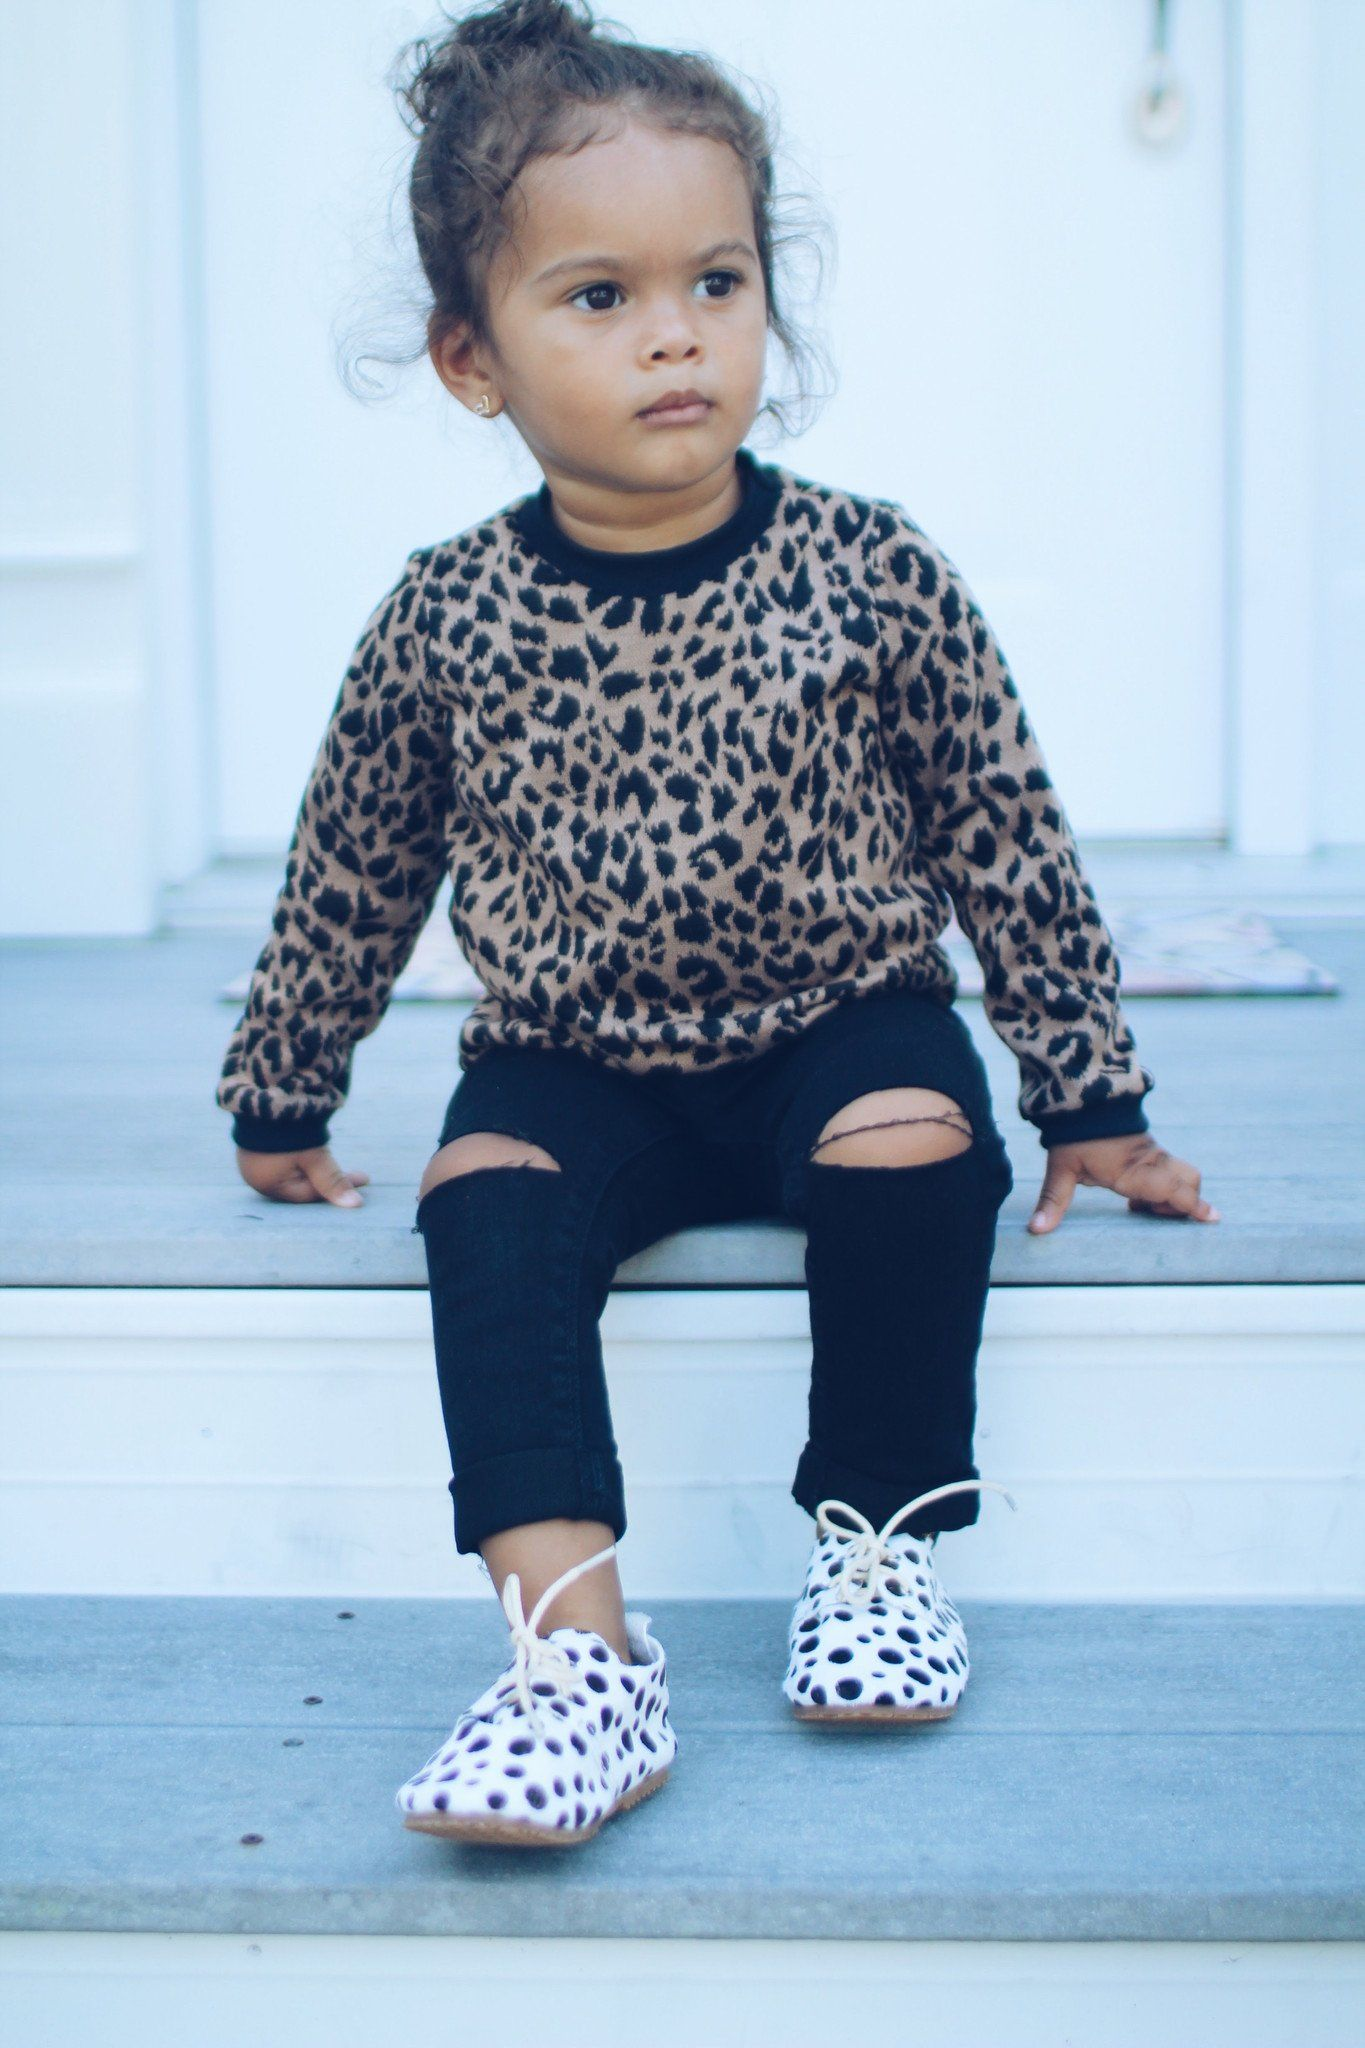 Sweater - Leopard Sweatshirt For Toddler Girl